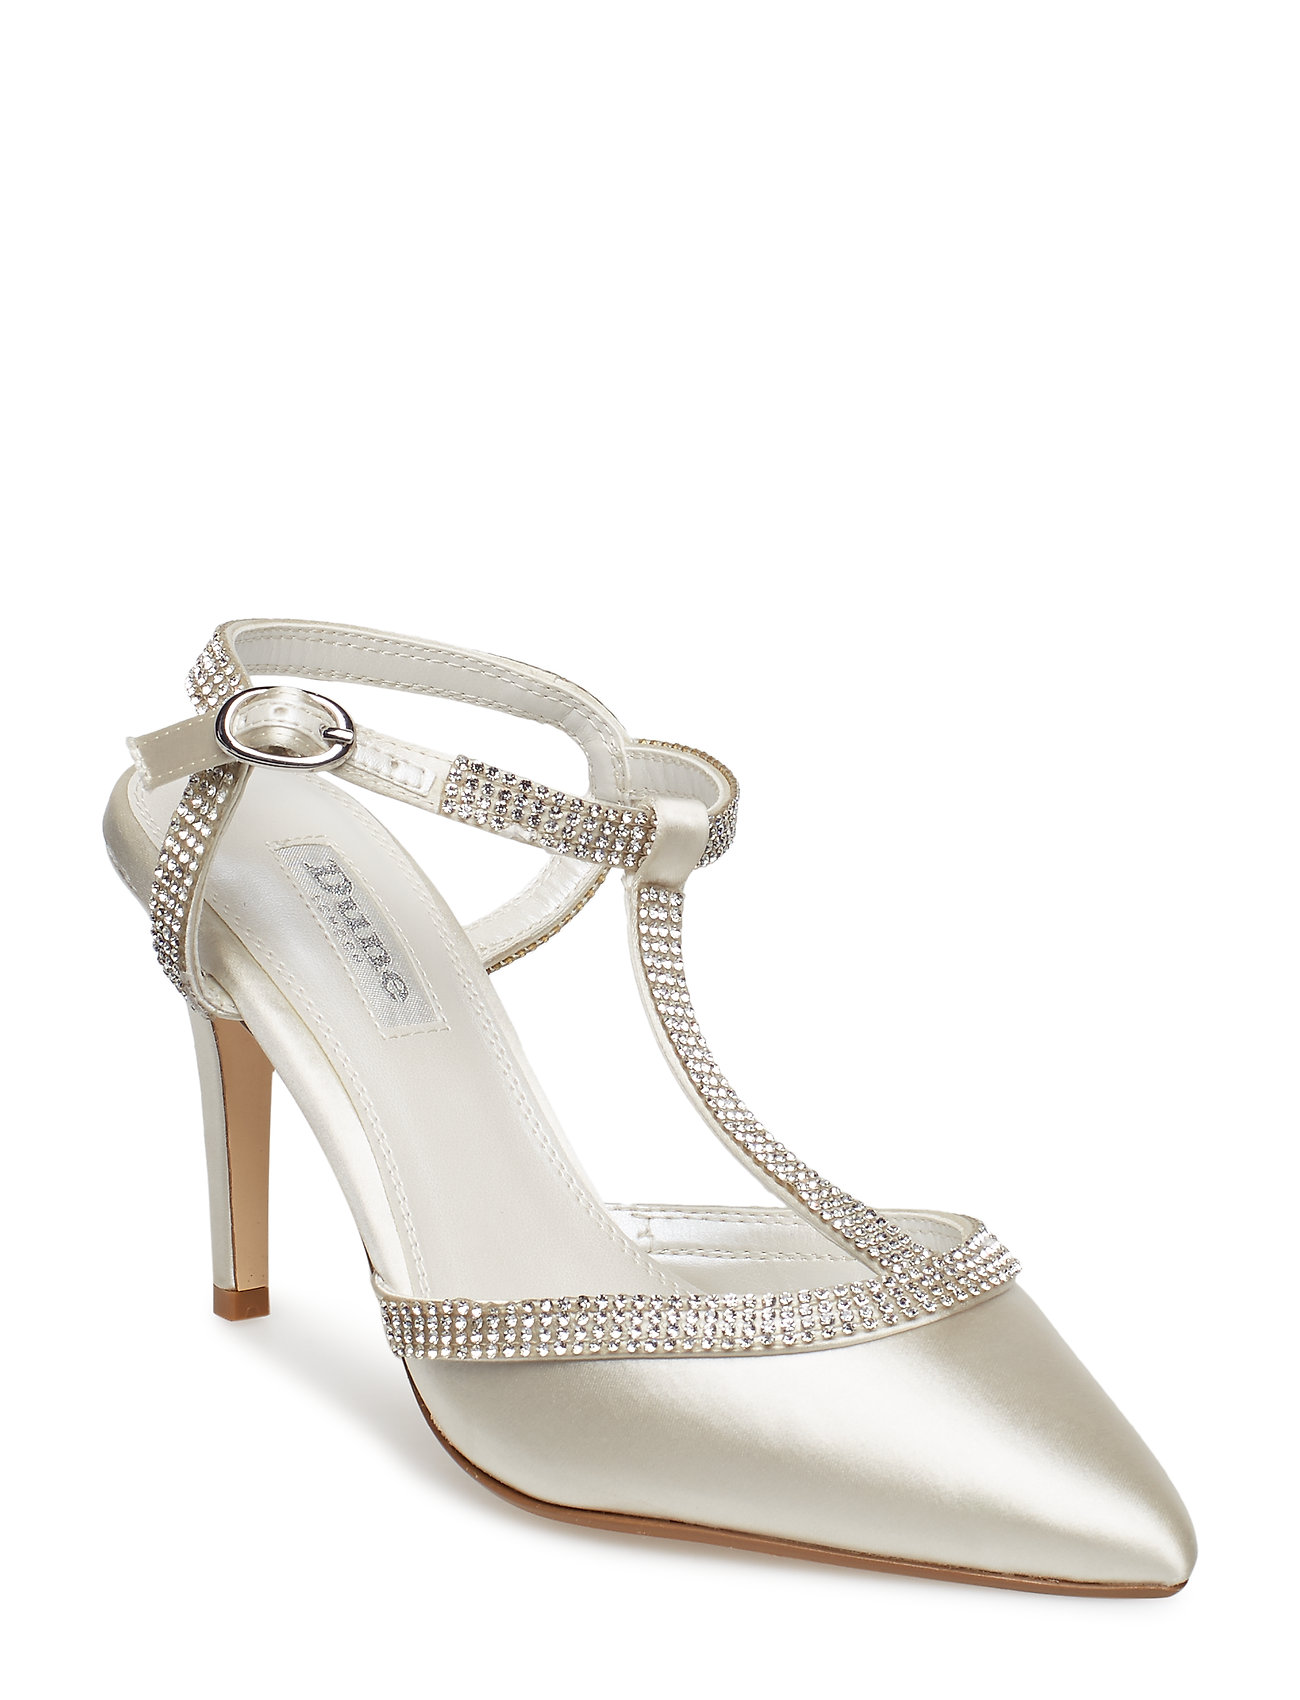 Dune London DELIGHTES - IVORY-SATIN